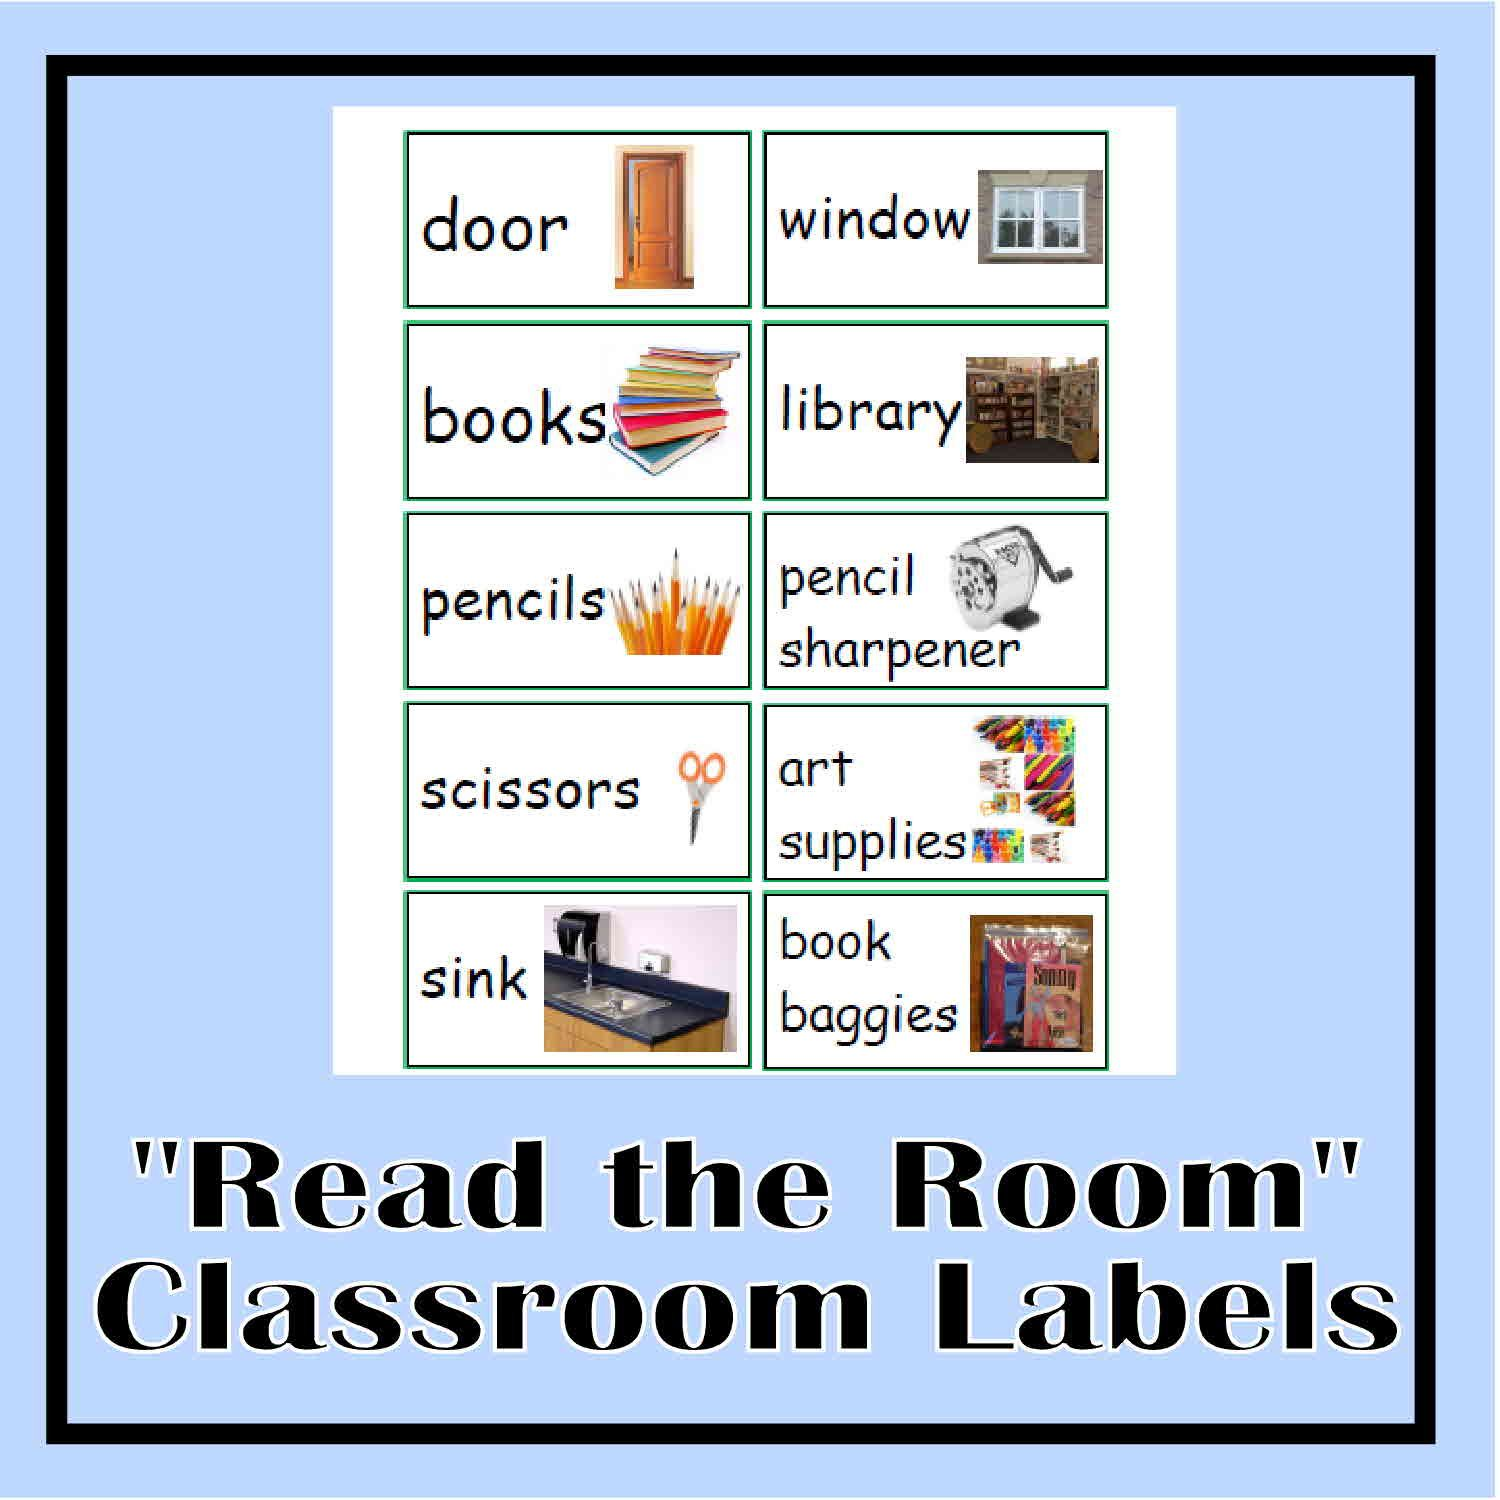 Read the room classroom labels classroom labels english for Room labels